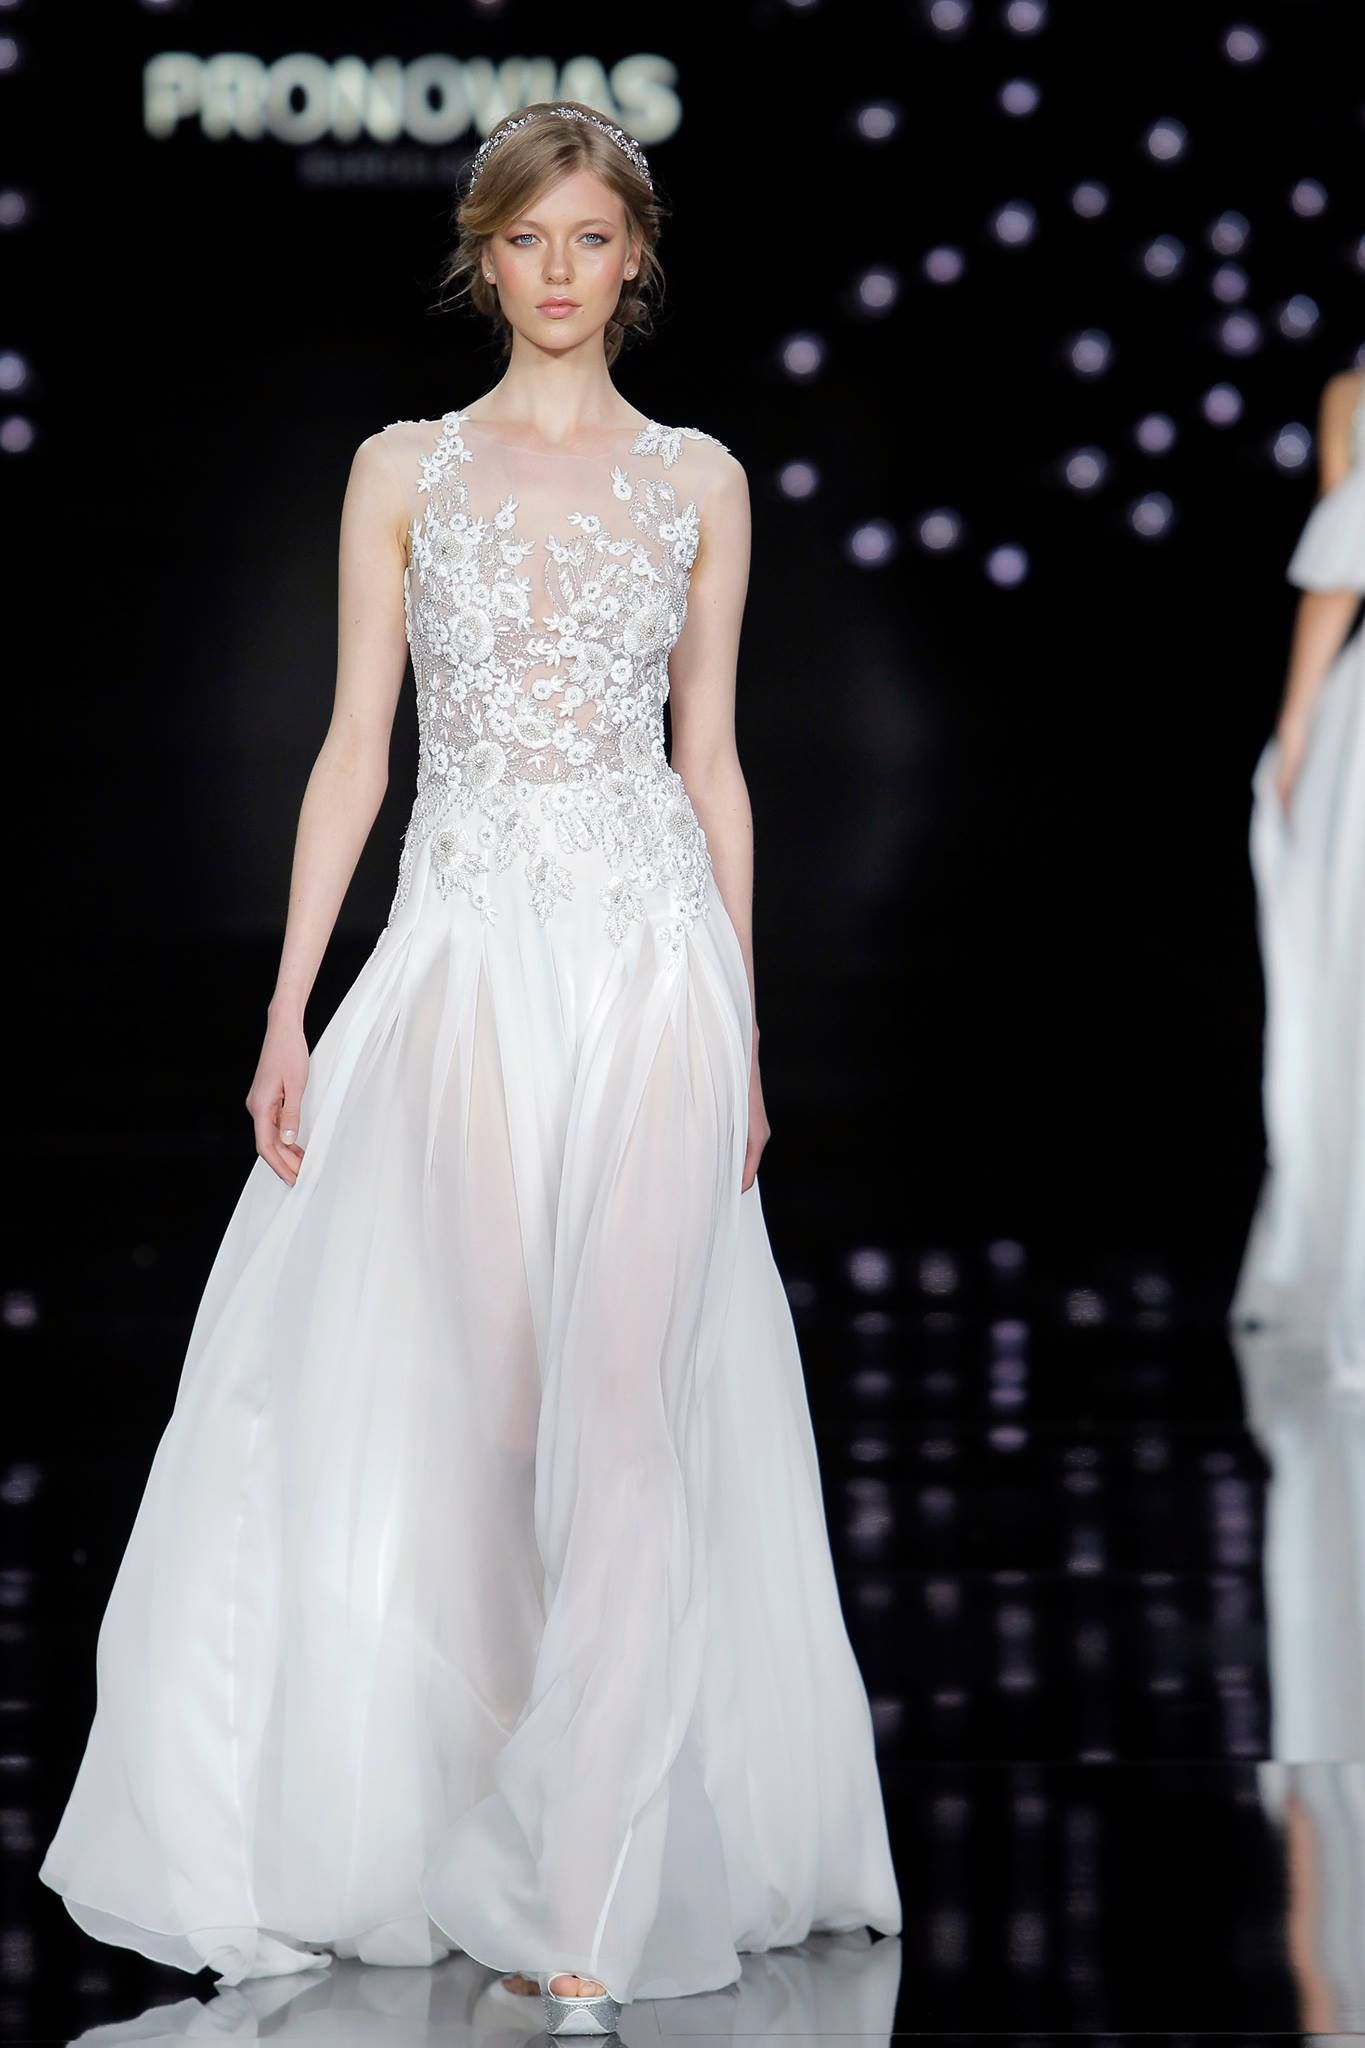 Fancy Atelier Pronovias Spring Closed out Barcelona Bridal Fashion Week with a gorgeous collection of weightless gowns inspired by La Ciel or the sky